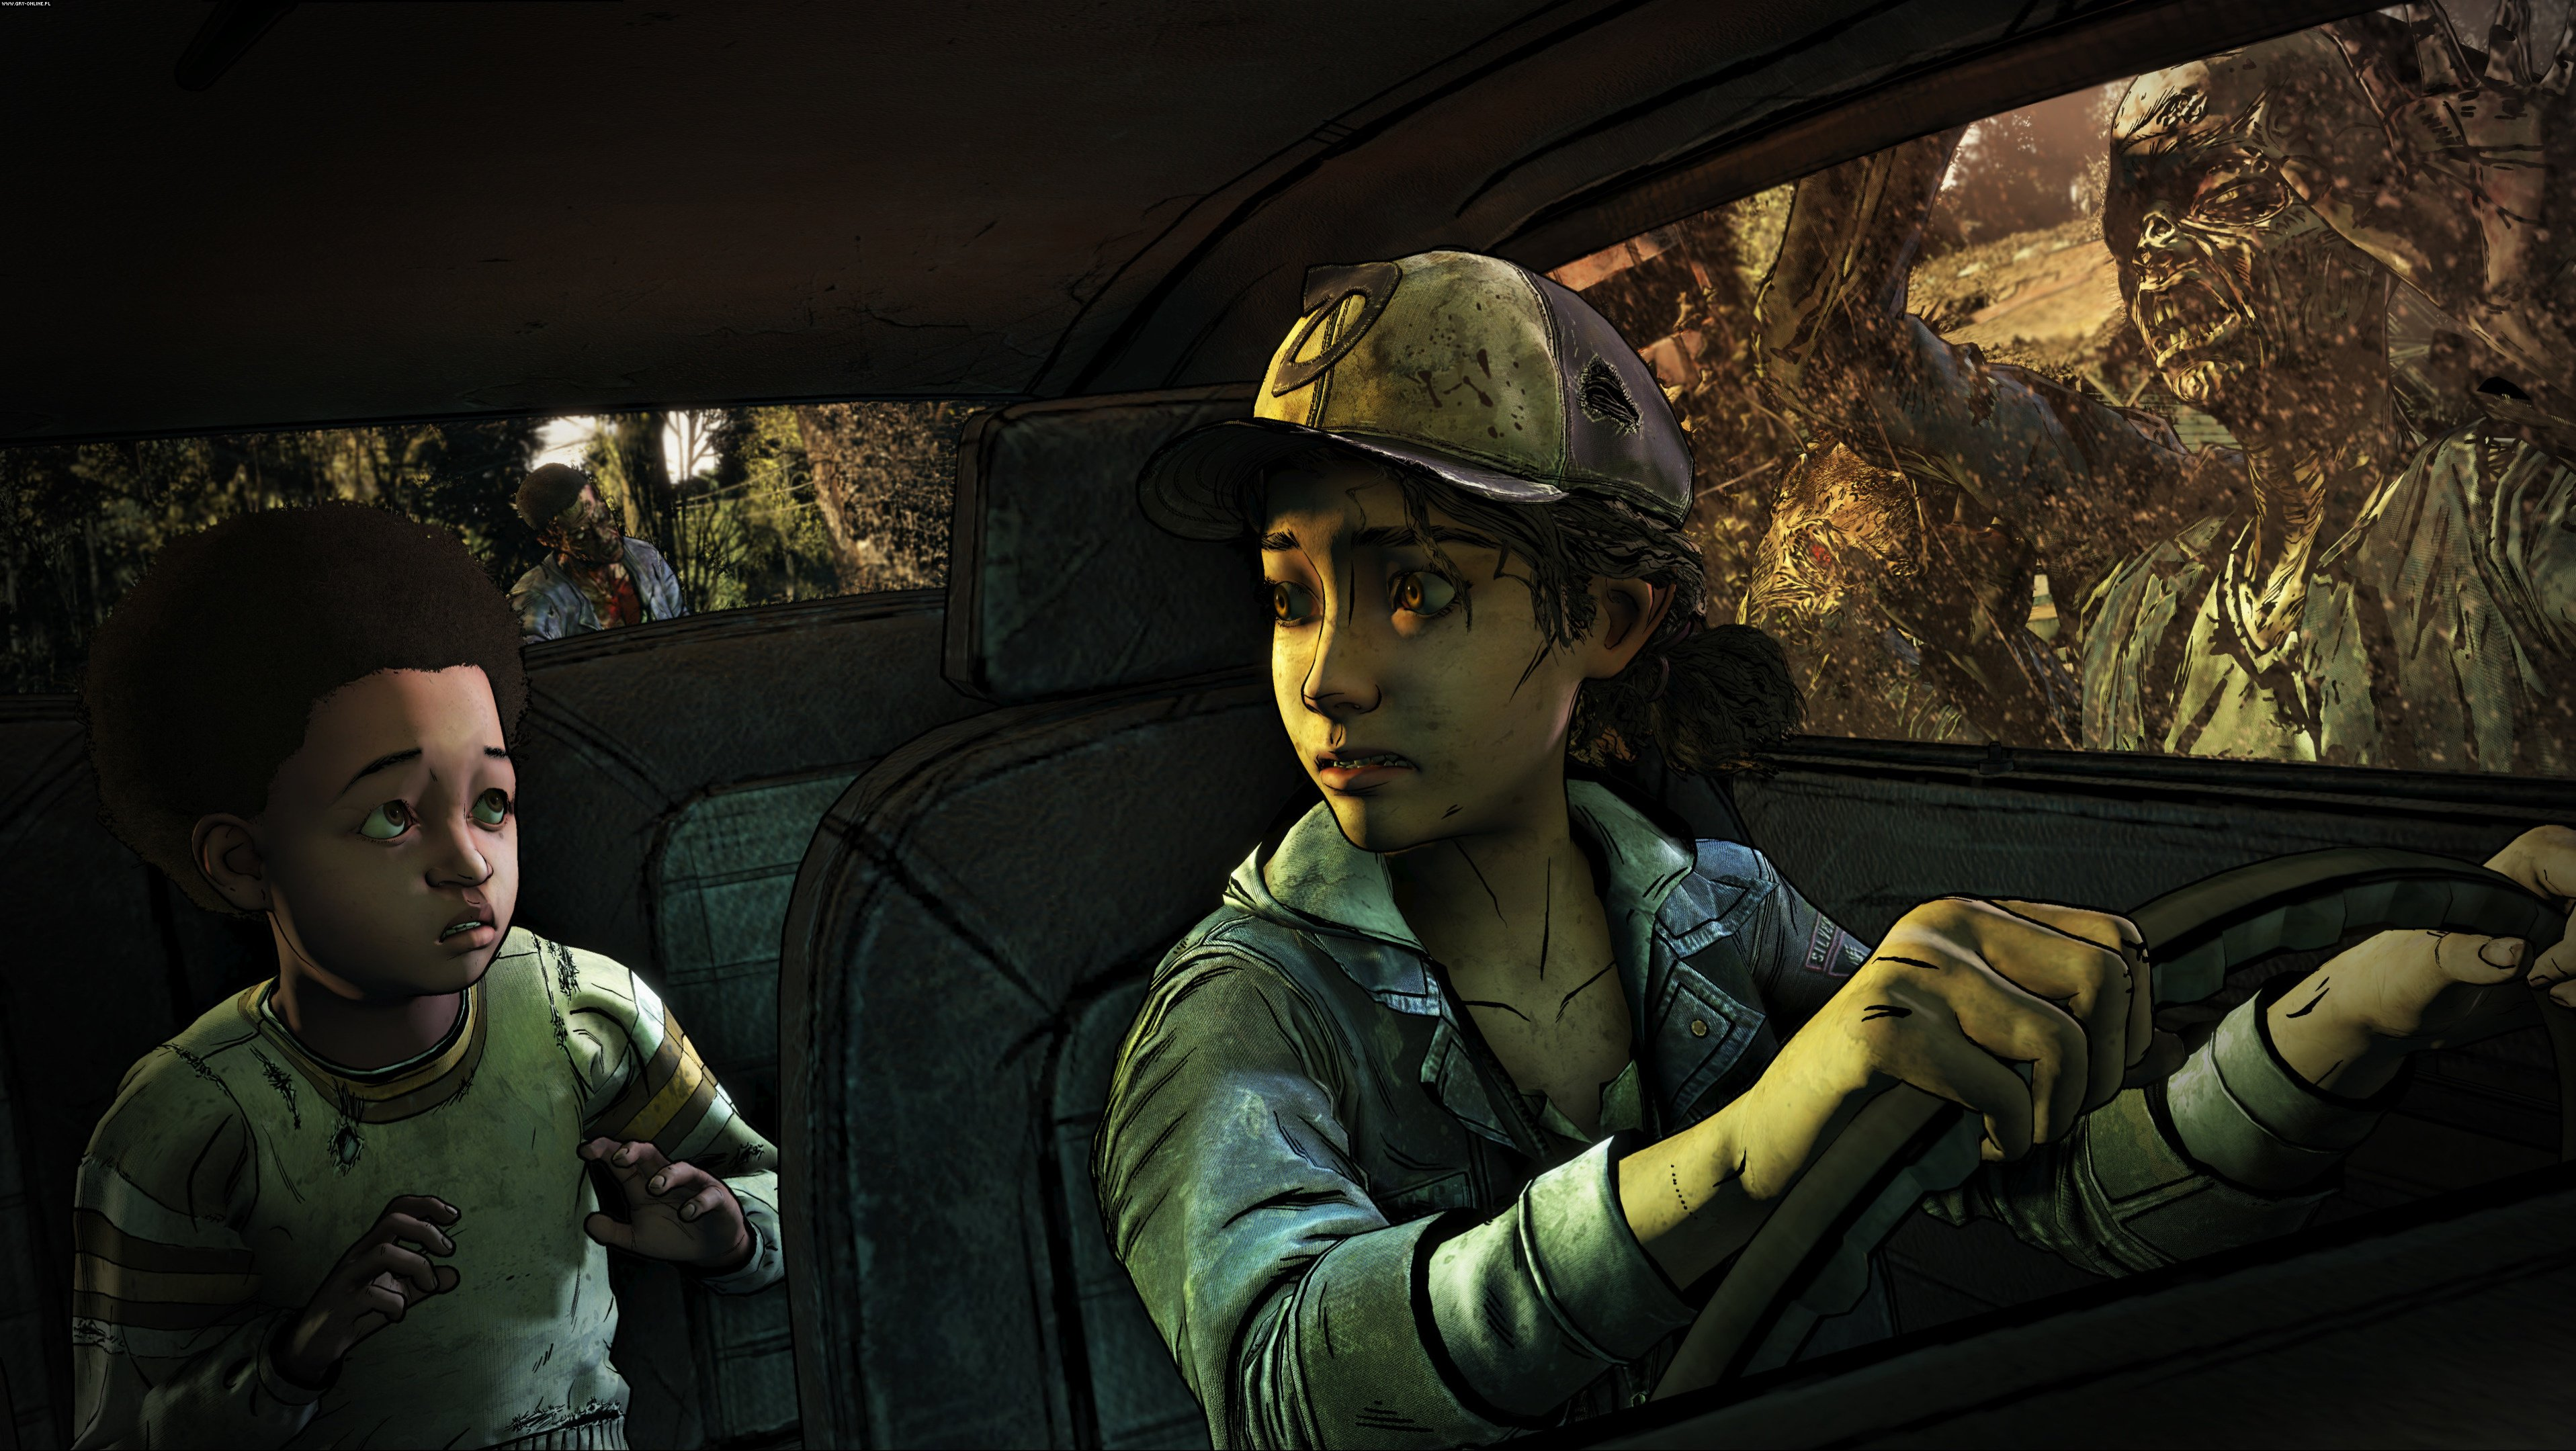 The Walking Dead: The Final Season PC, PS4, XONE, AND, iOS, Switch Gry Screen 23/29, Telltale Games